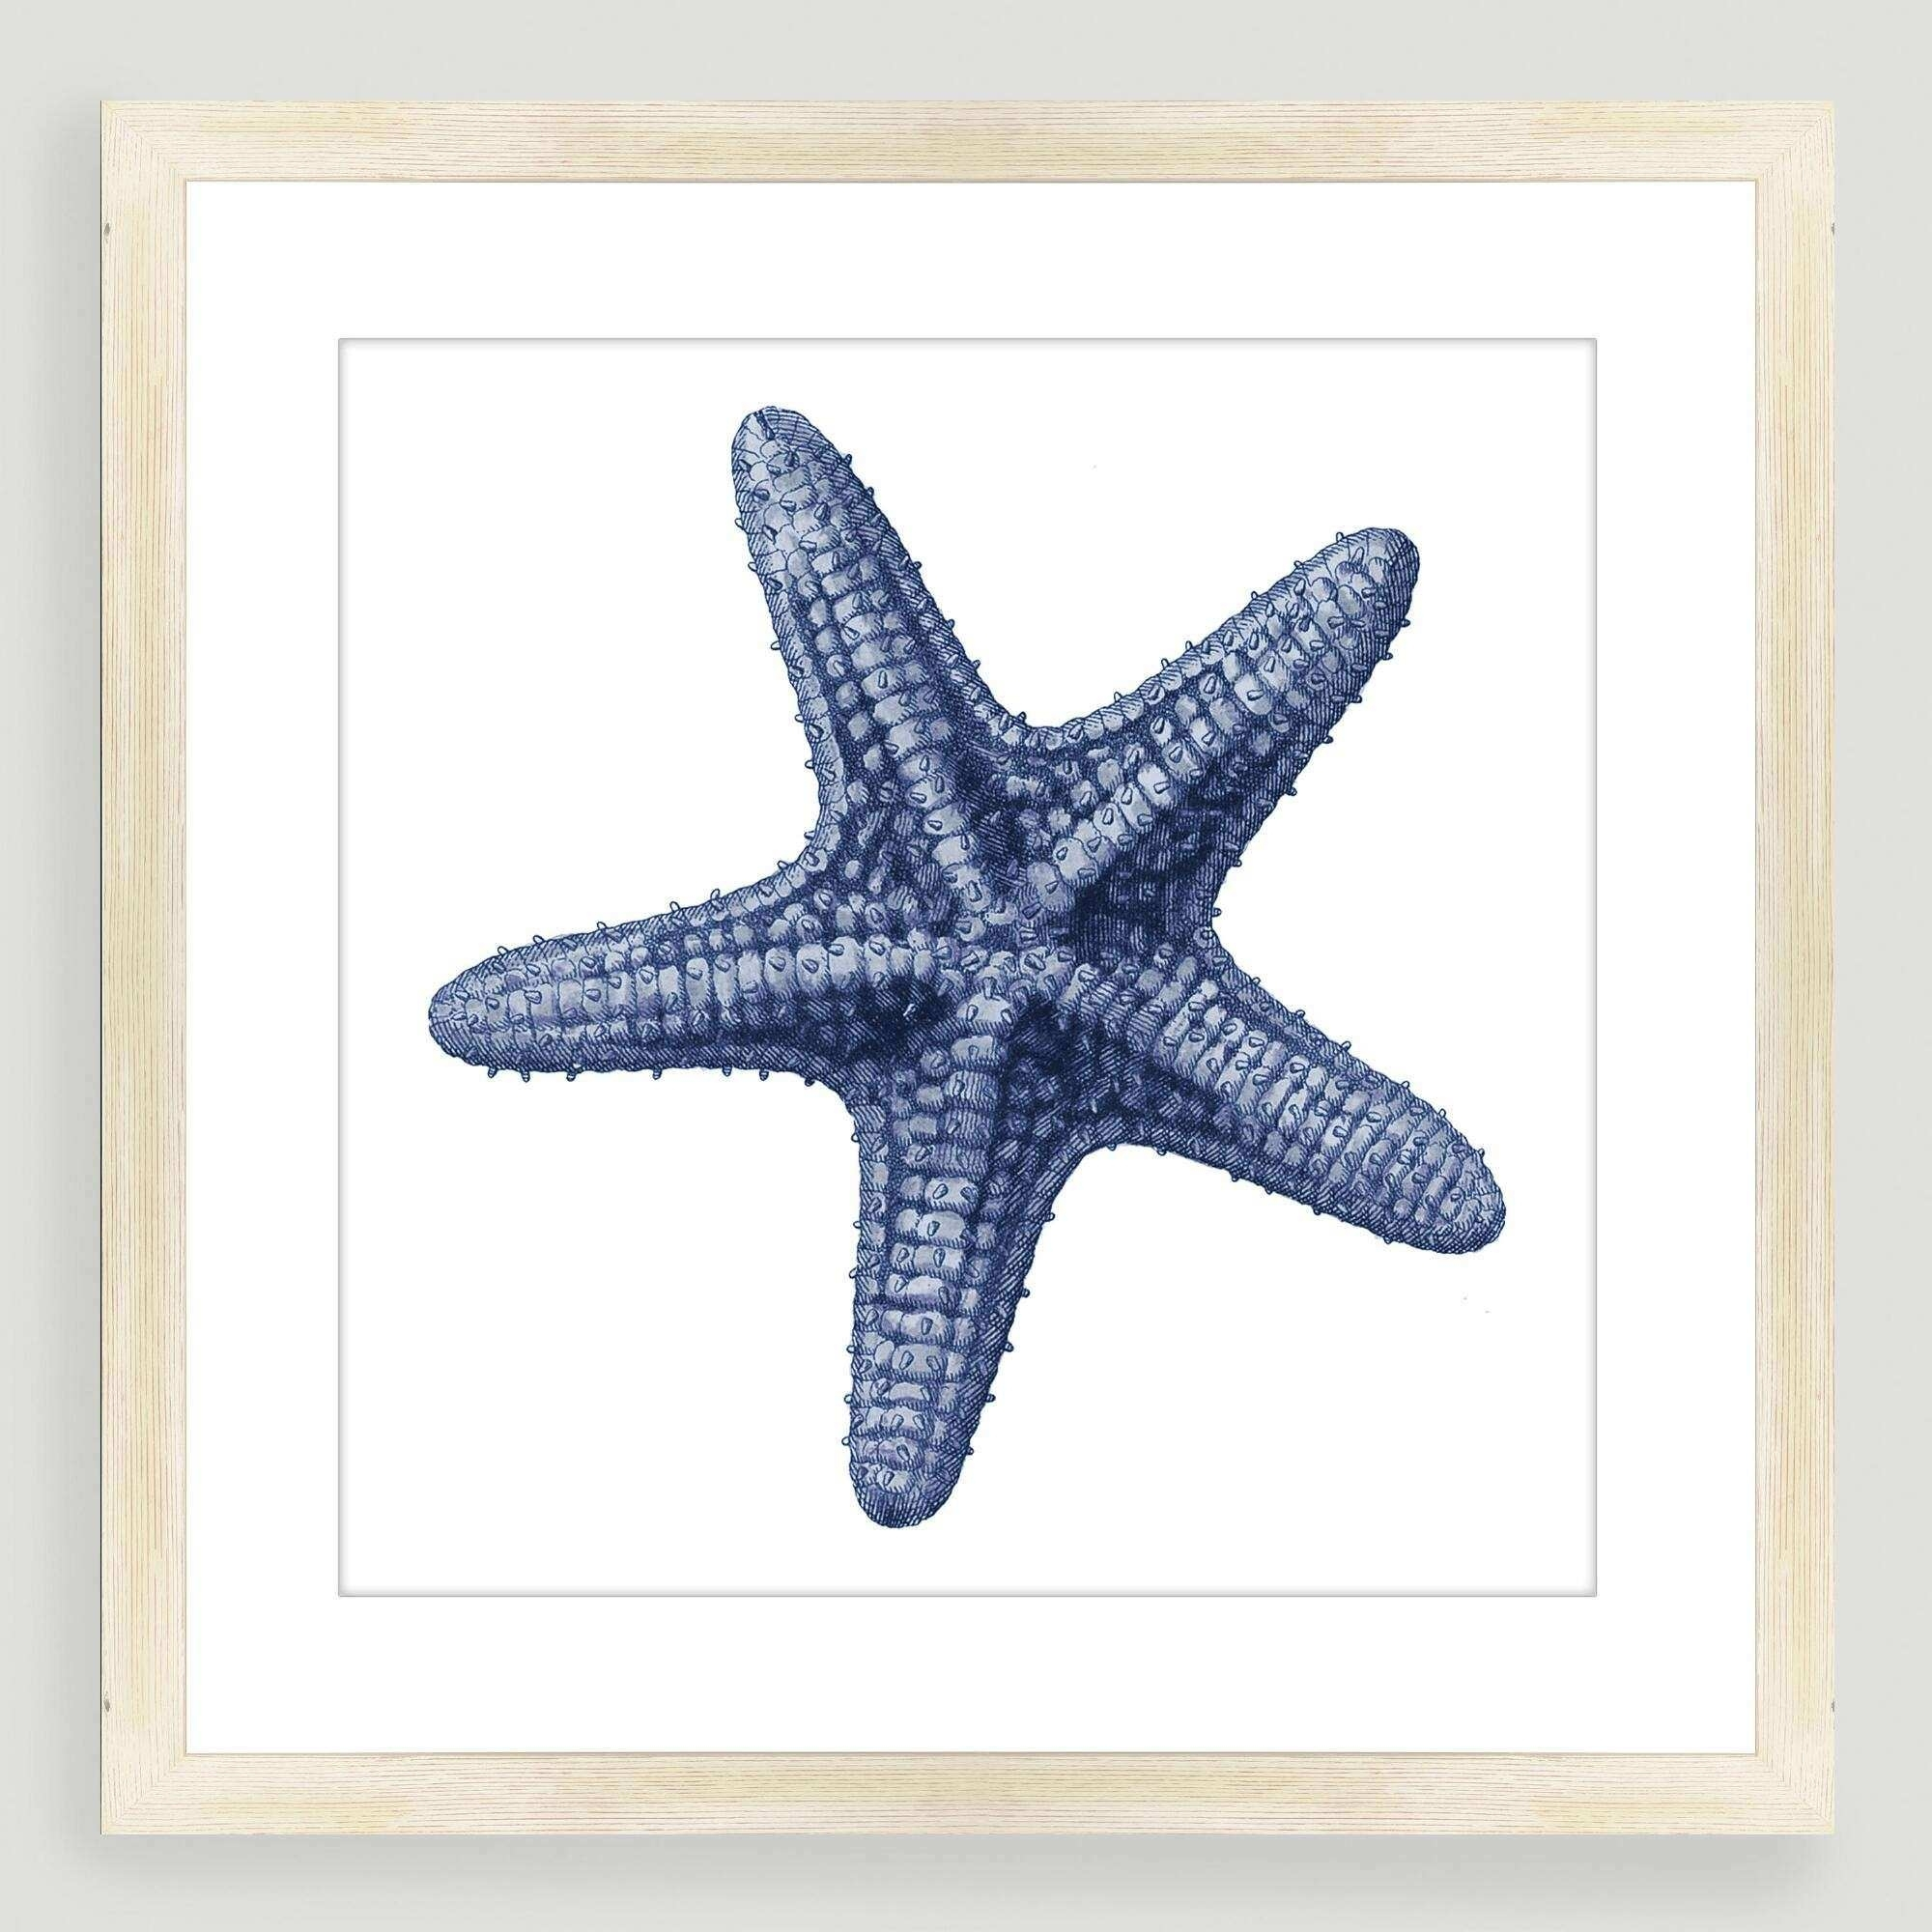 Ocean Wall Art New Vintage Style Starfish Sea Life Wall Art | Wall With Regard To Recent Sea Life Wall Art (View 9 of 15)